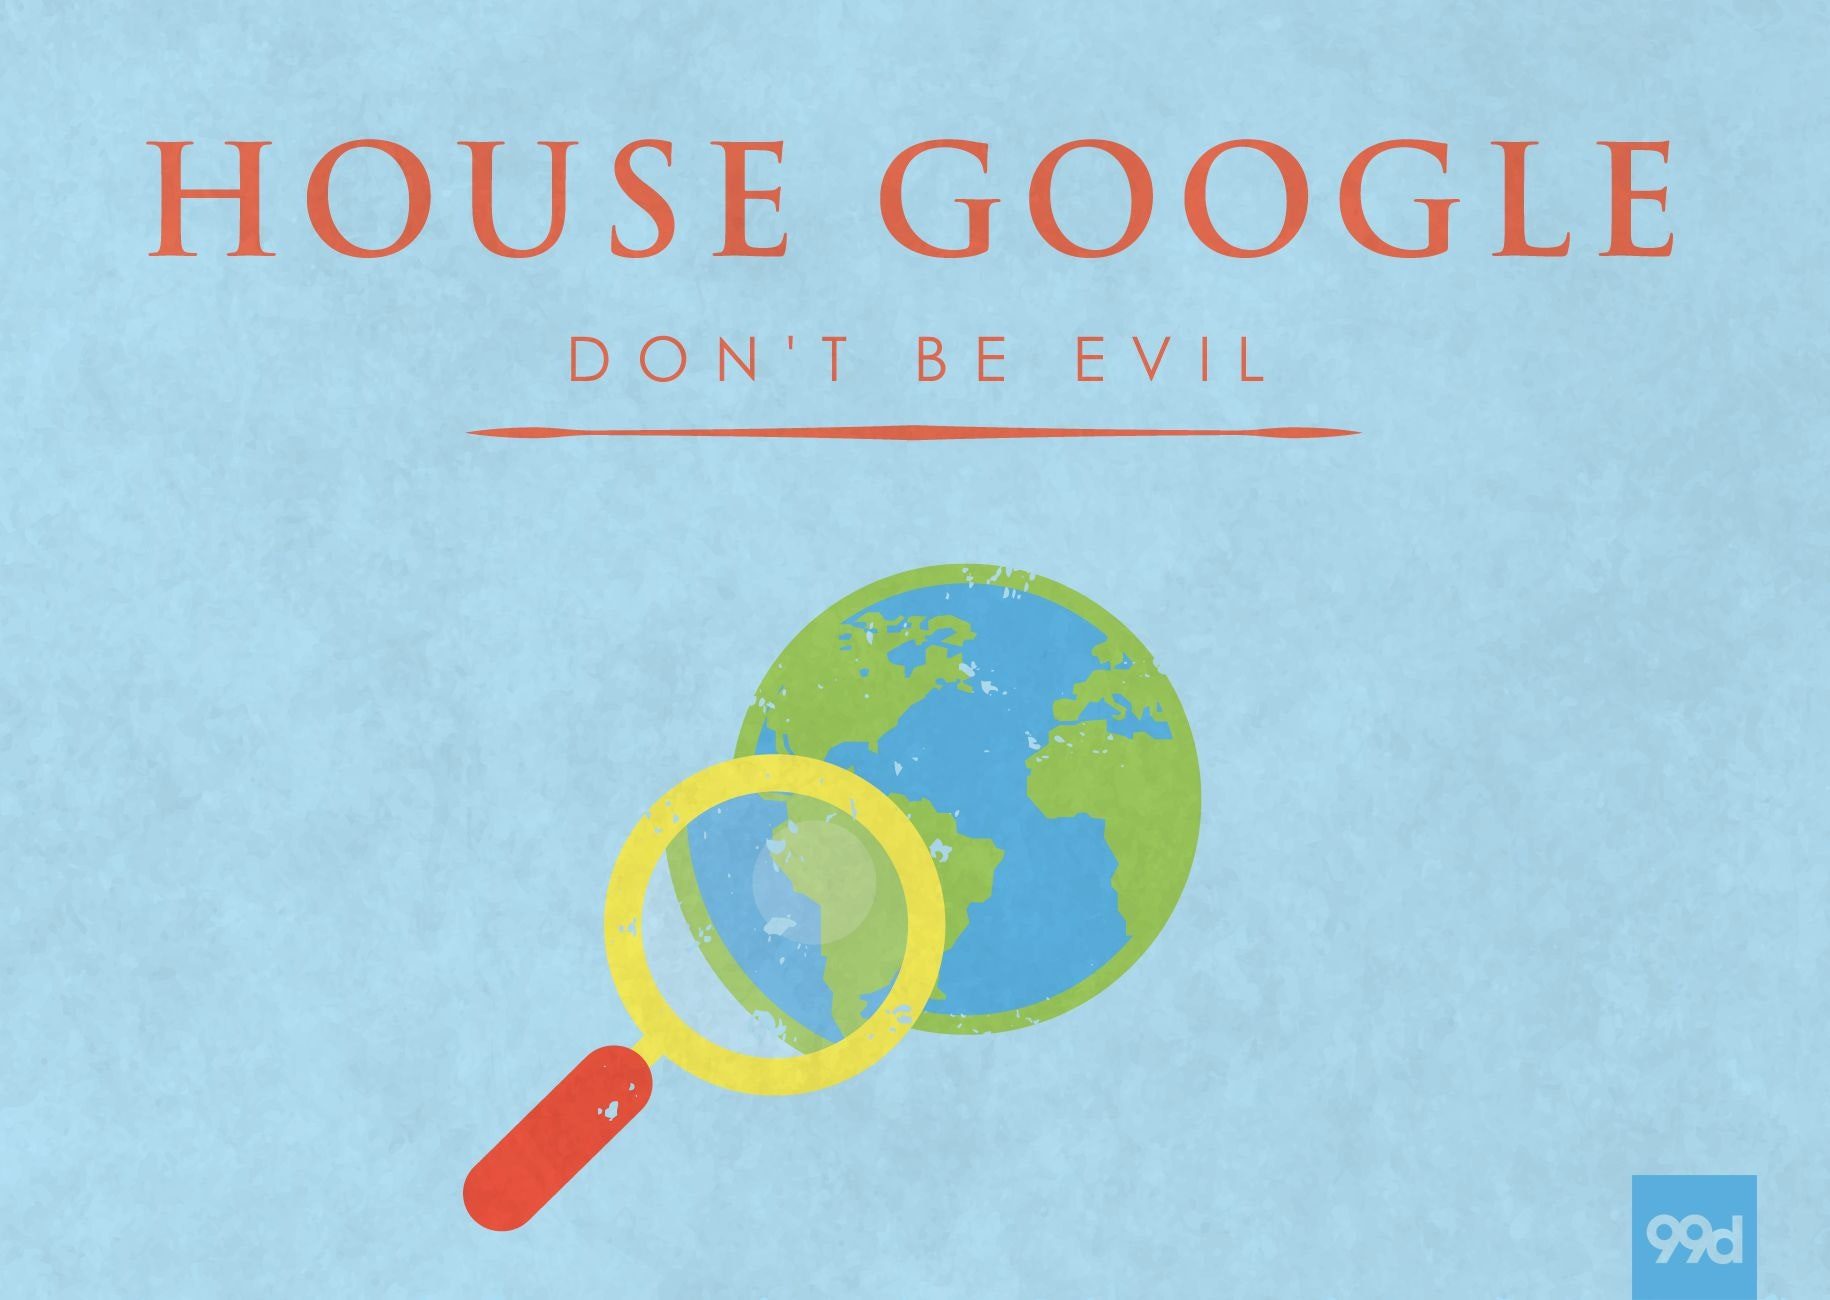 Game of Thrones House Google